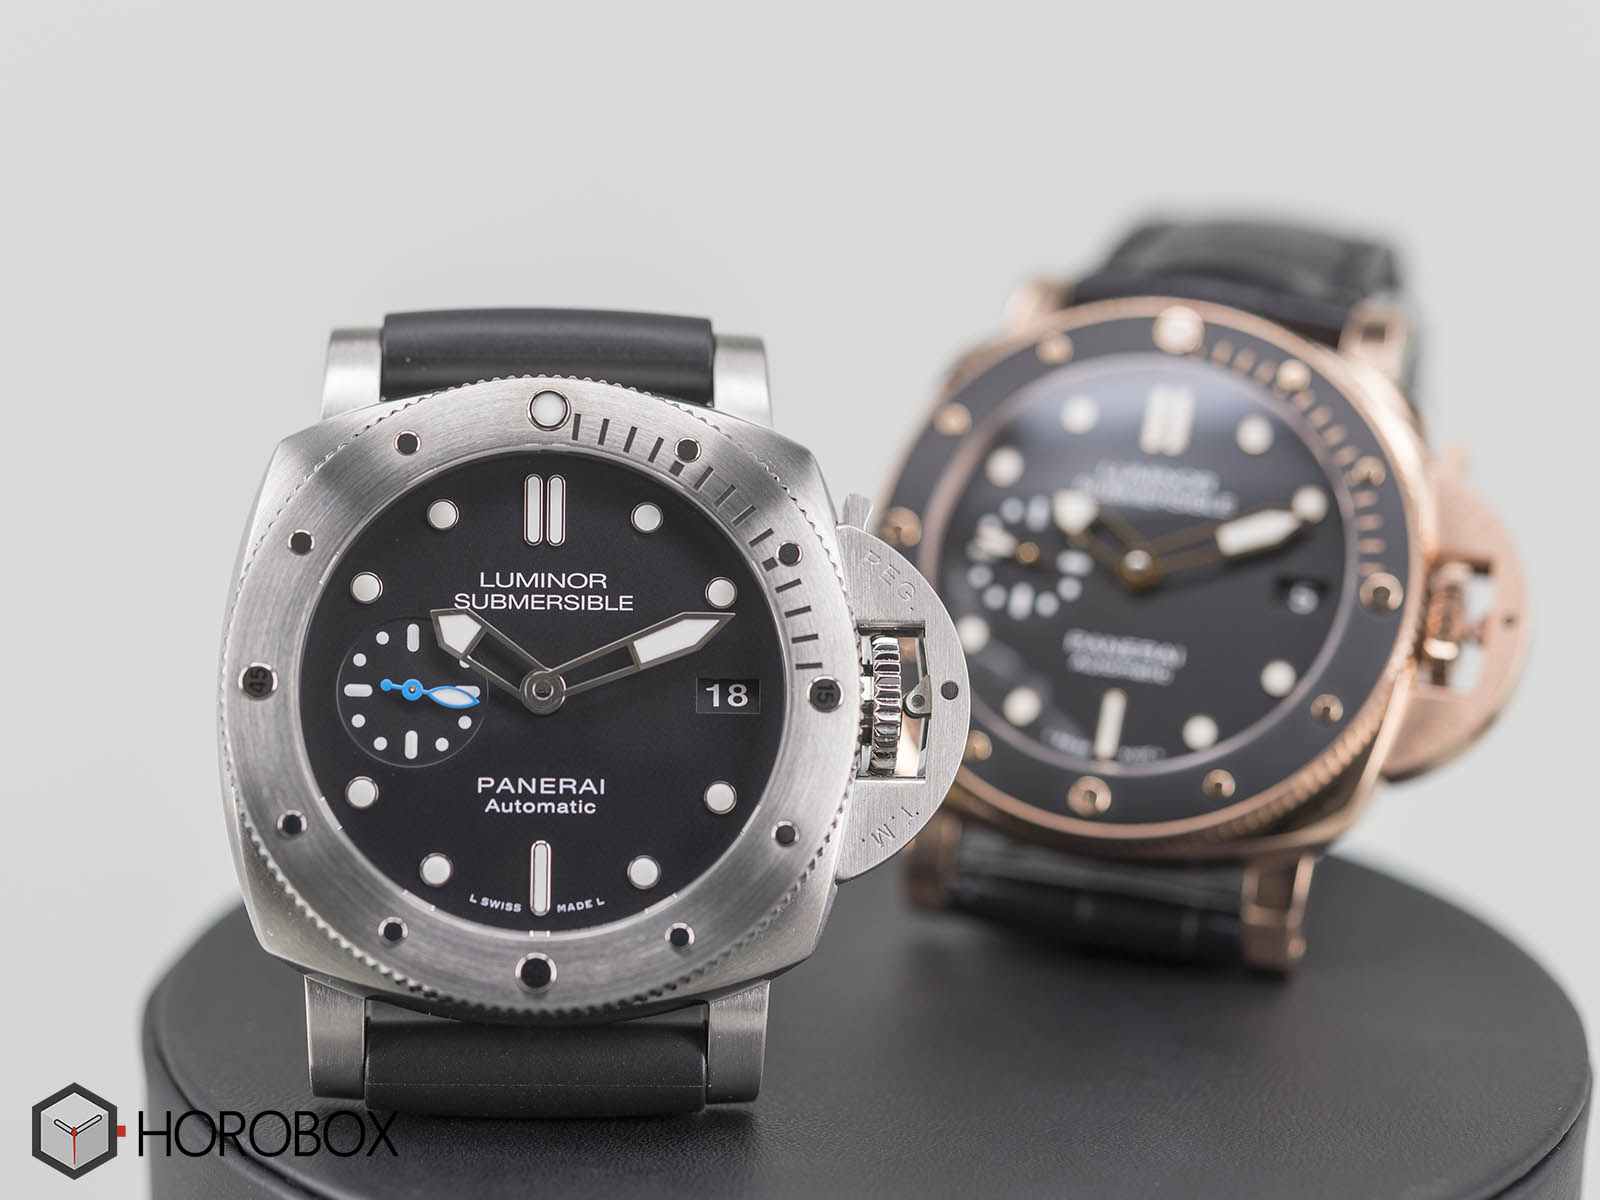 panerai-luminor-1950-submersible-pam00682-pam00684-5.jpg